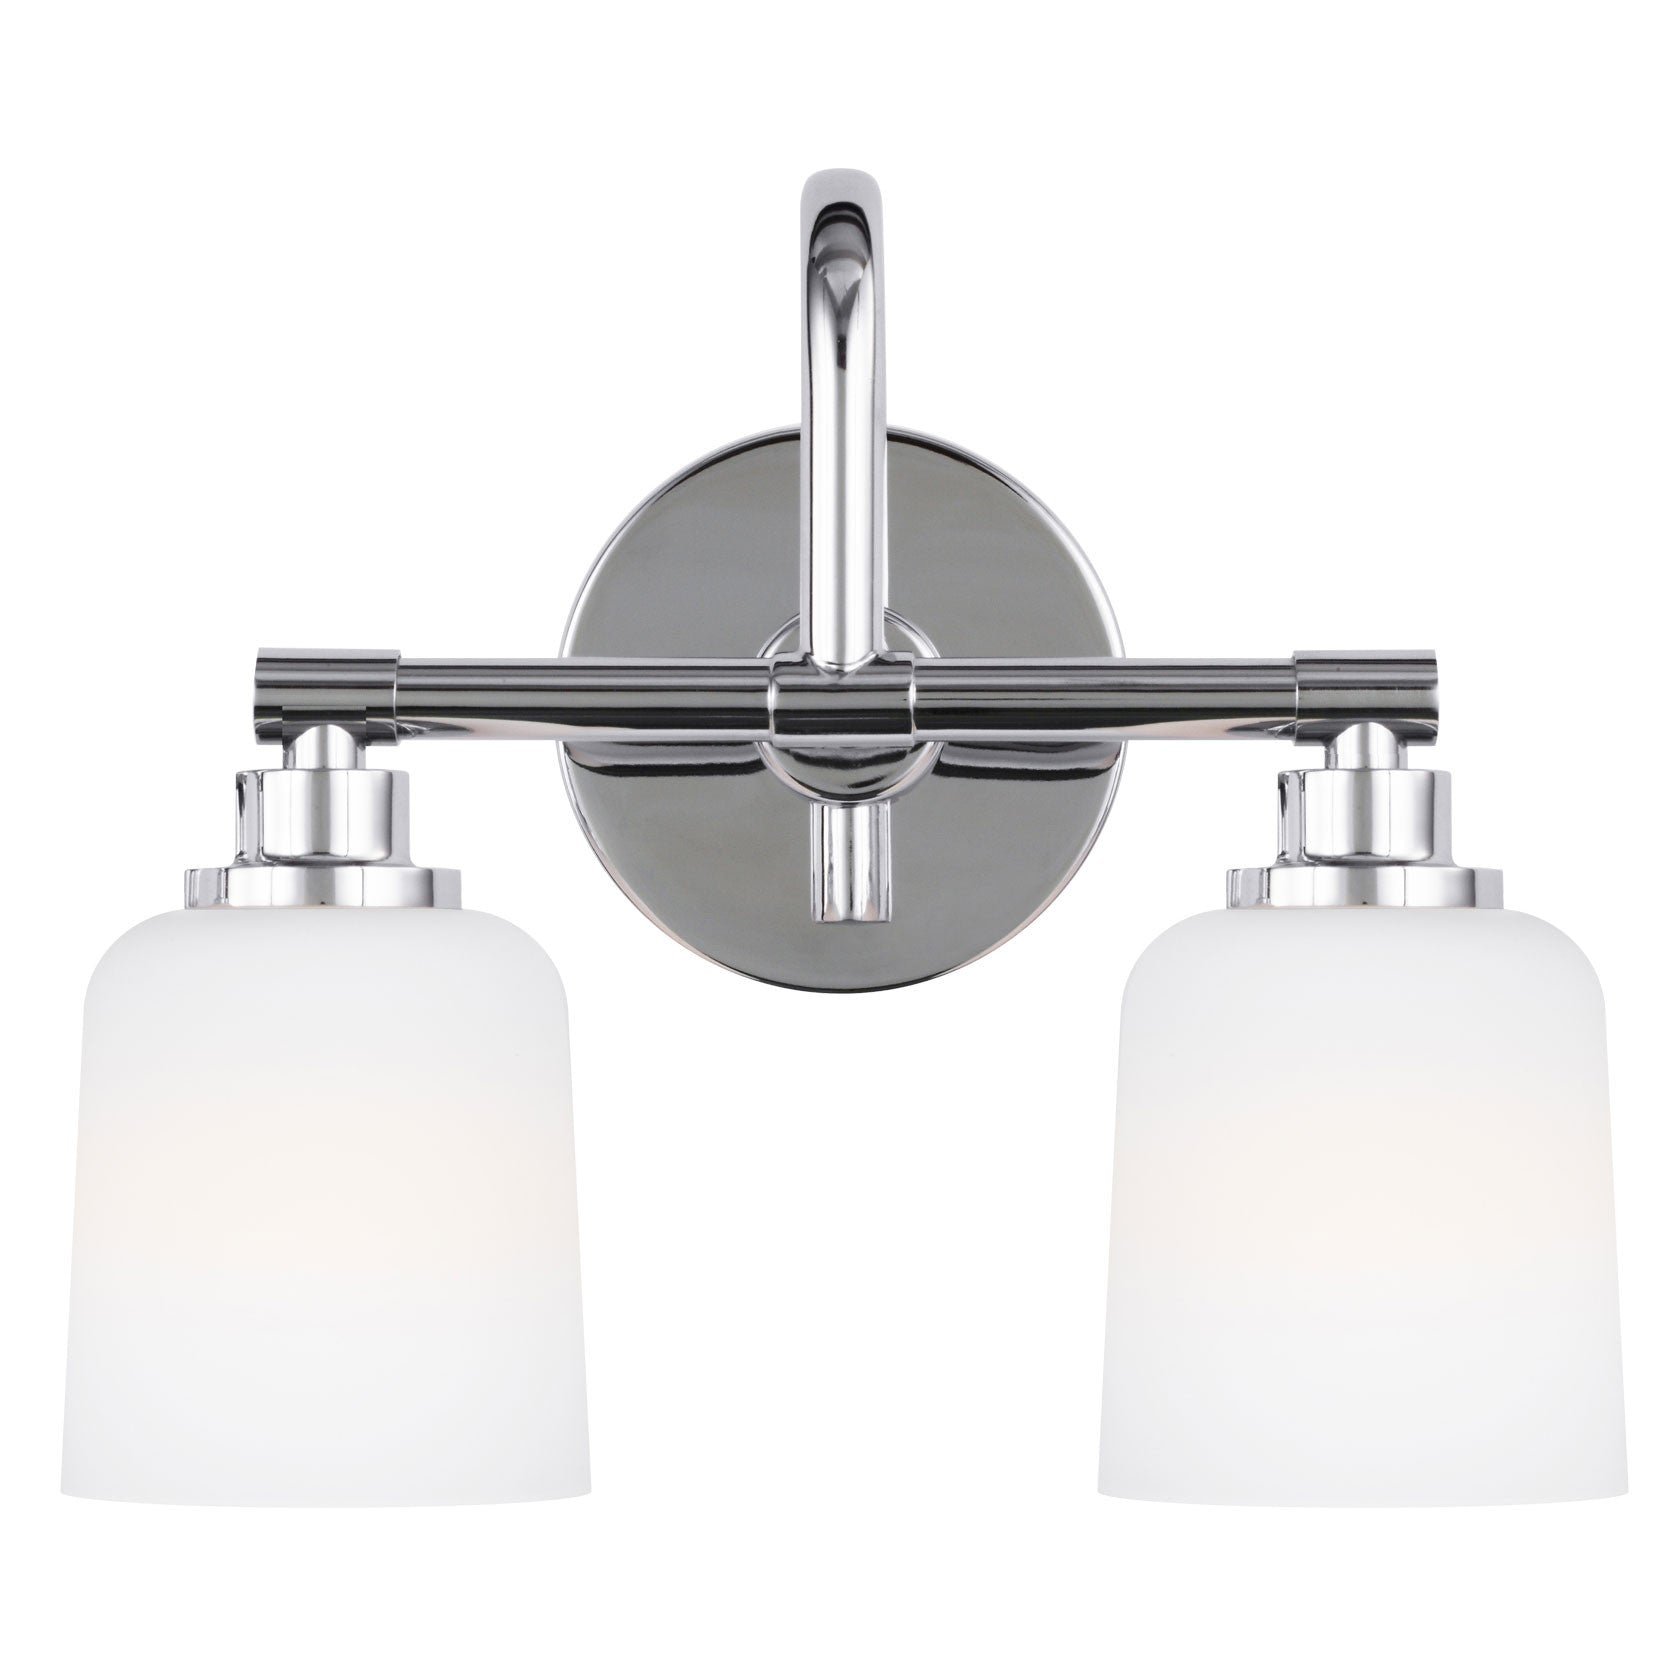 Feiss 2 Light Reiser Vanity Light in Chrome VS23902CH